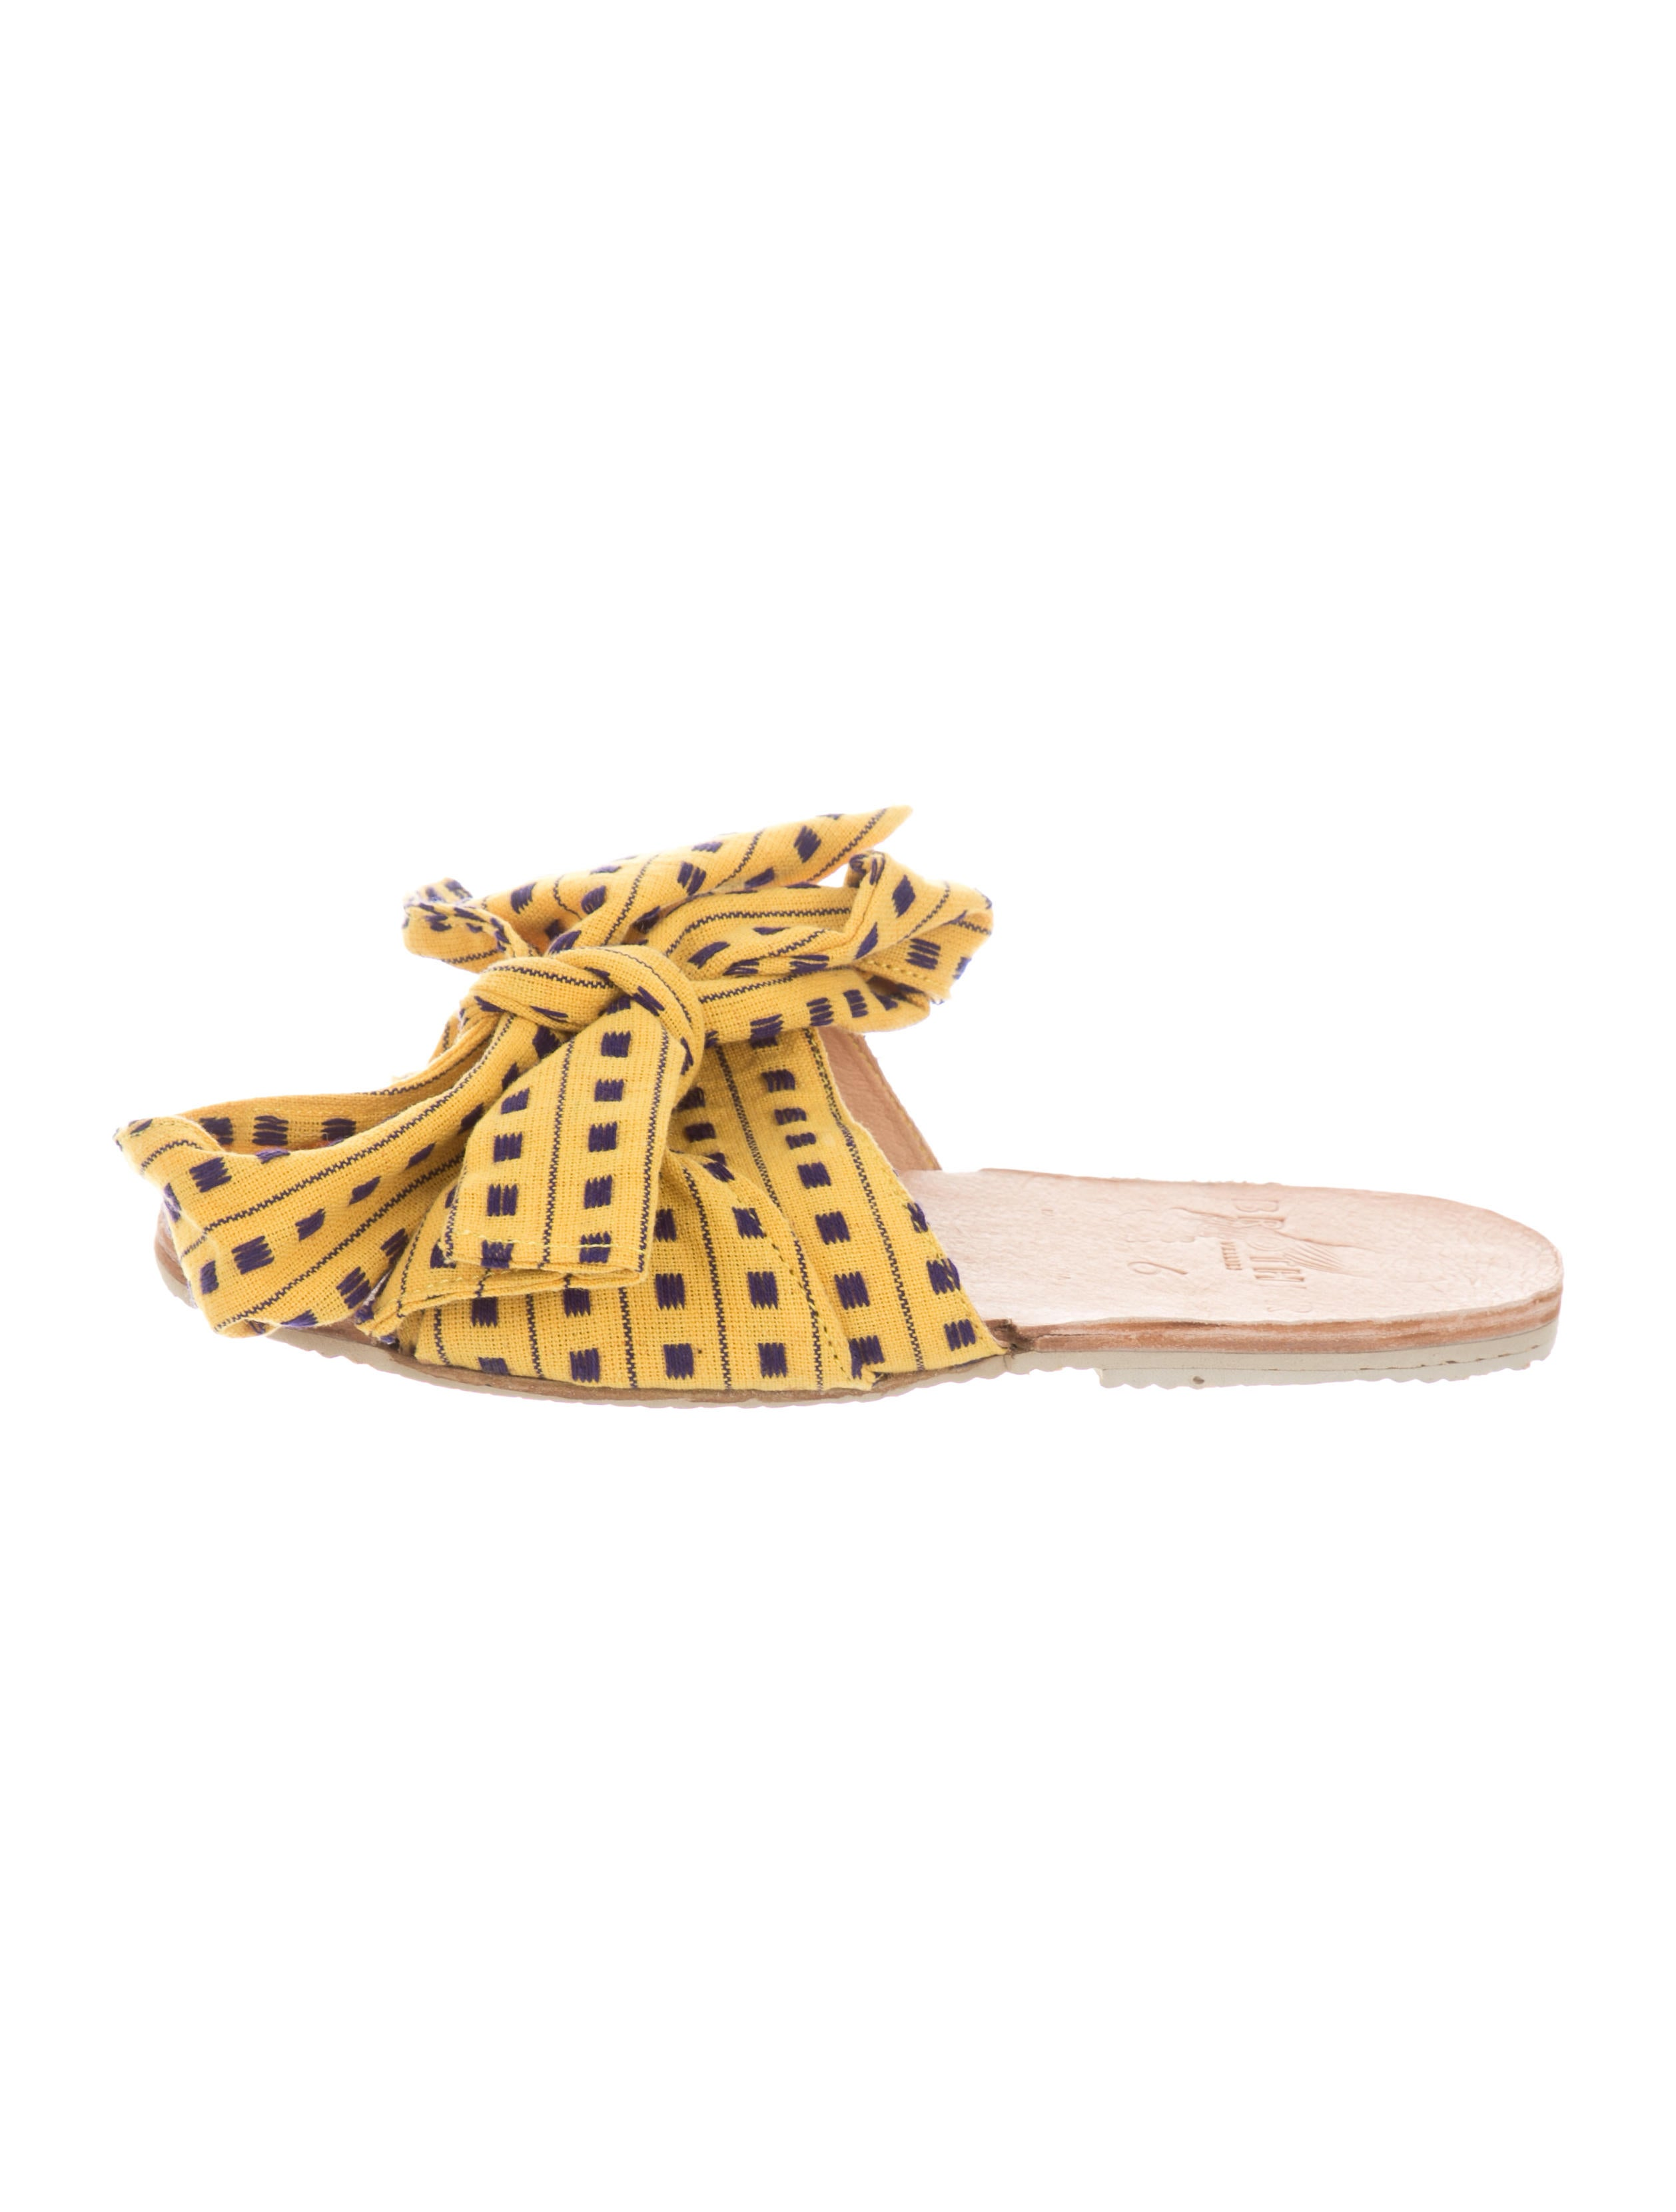 Brother Vellies Burkina Slide Sandals w/ Tags 2014 newest cheap price OAVDzS